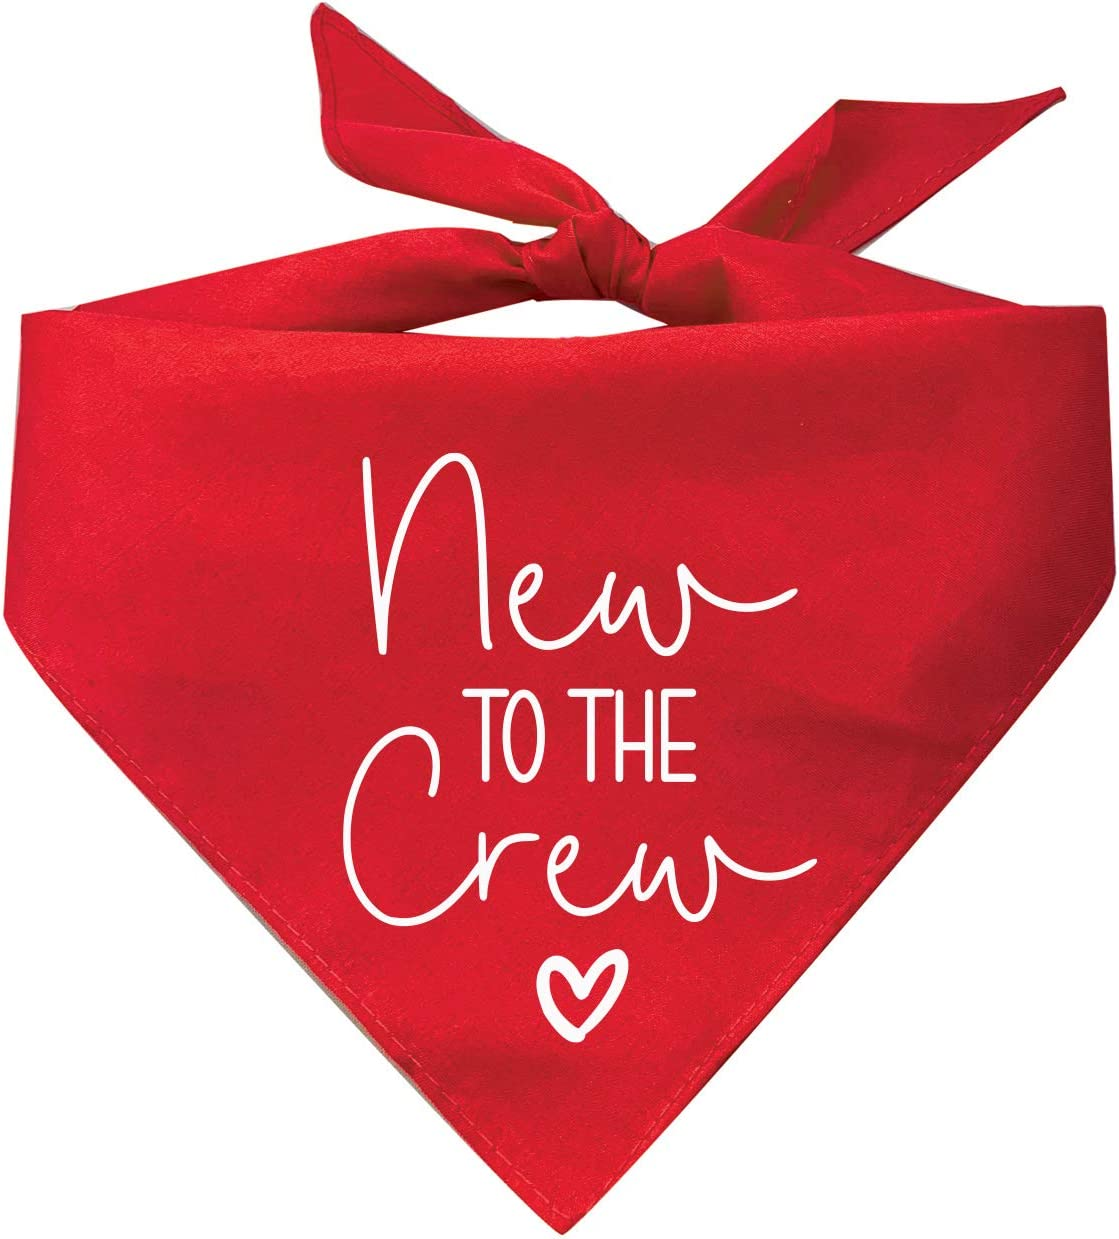 New to free shipping The Crew Triangle Bandana Colors Assorted Some reservation Dog